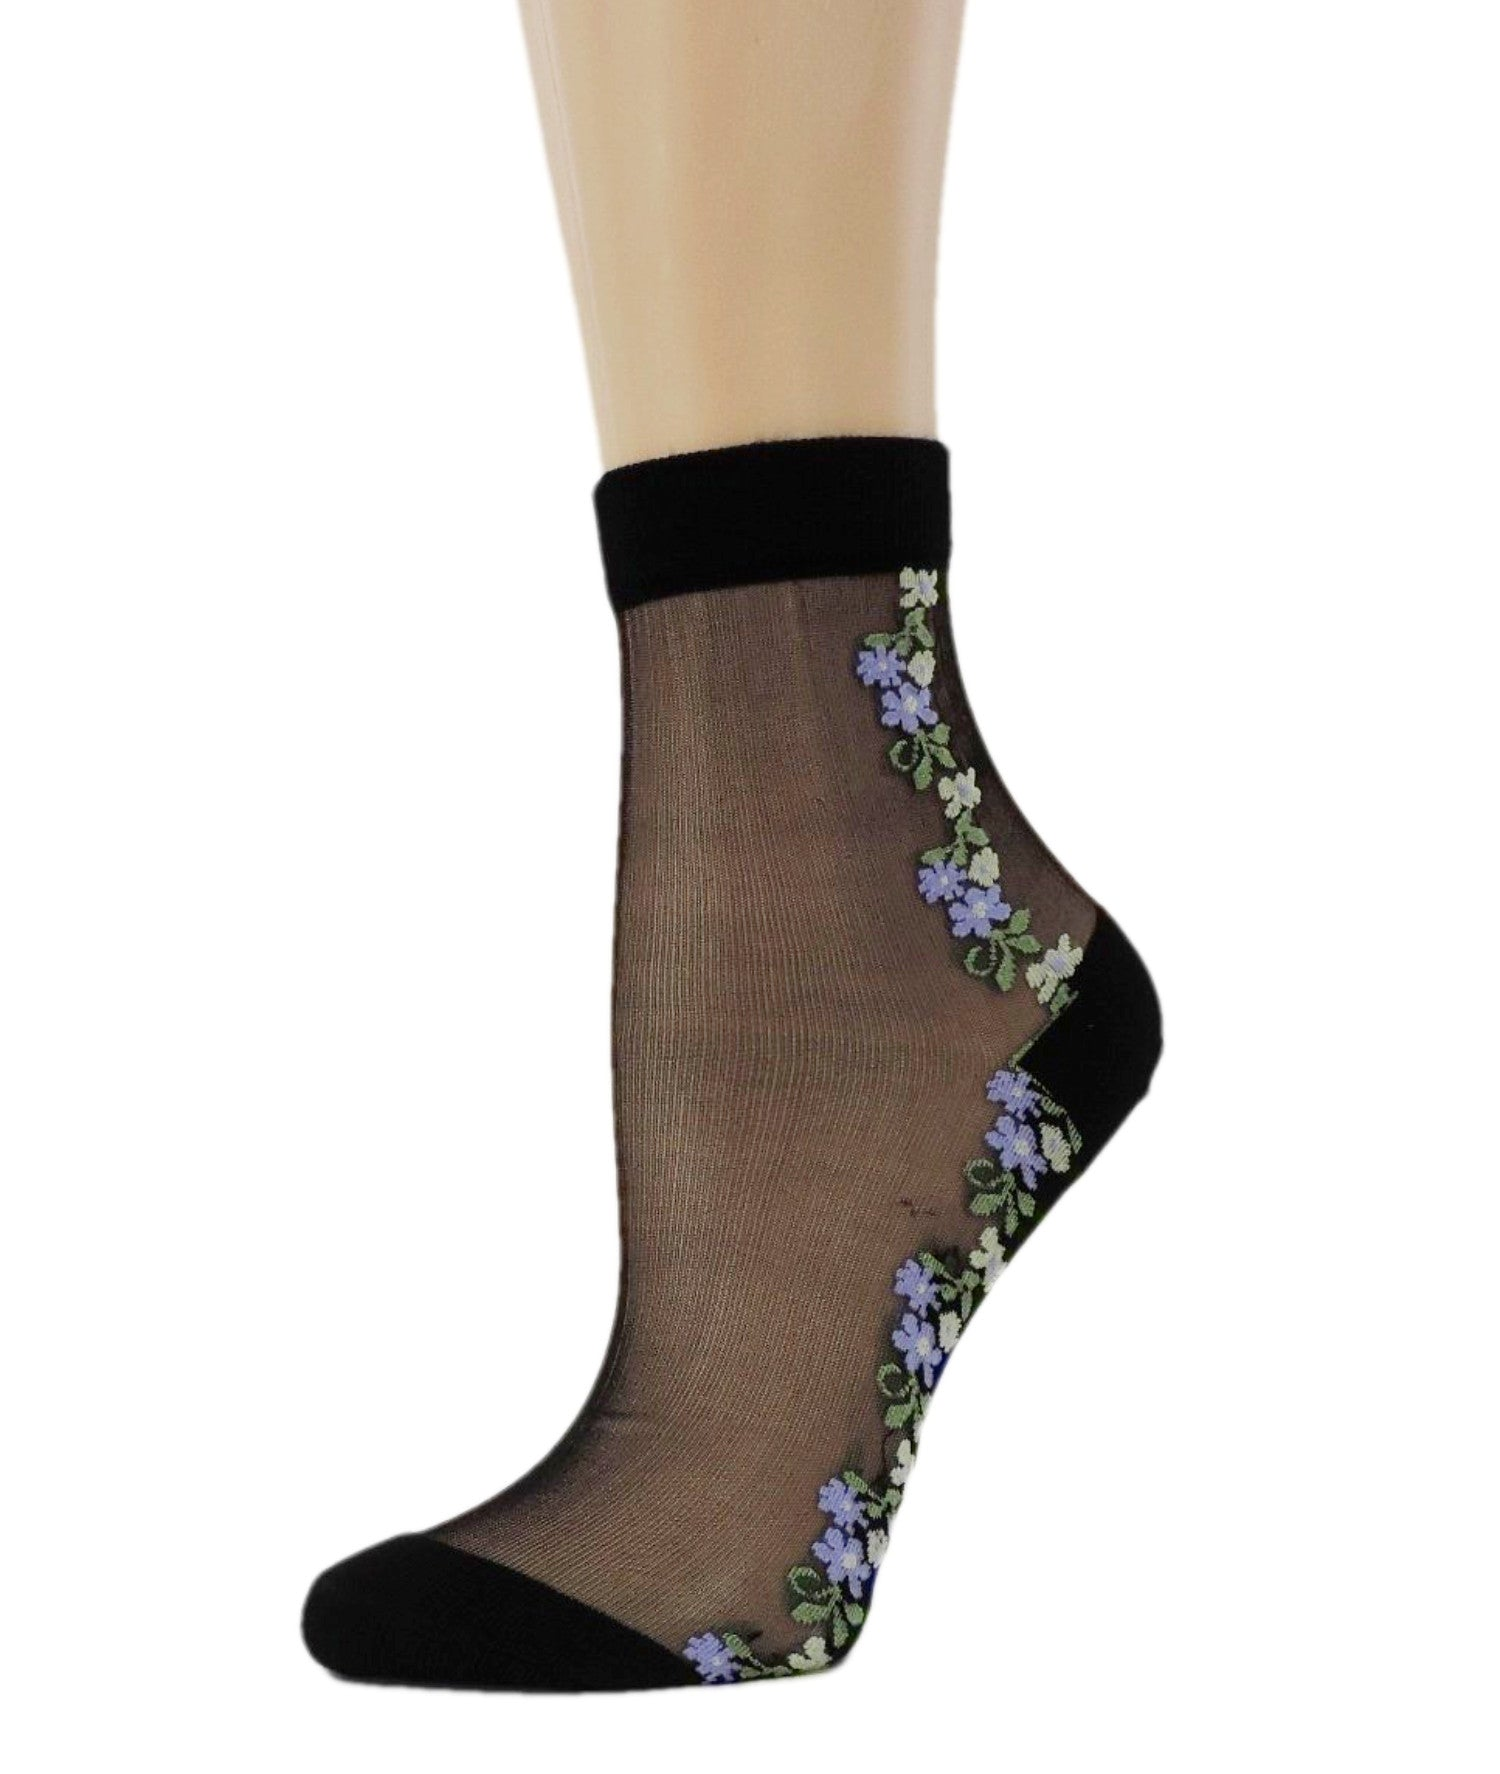 Delicate Flowers Sheer Socks - Global Trendz Fashion®